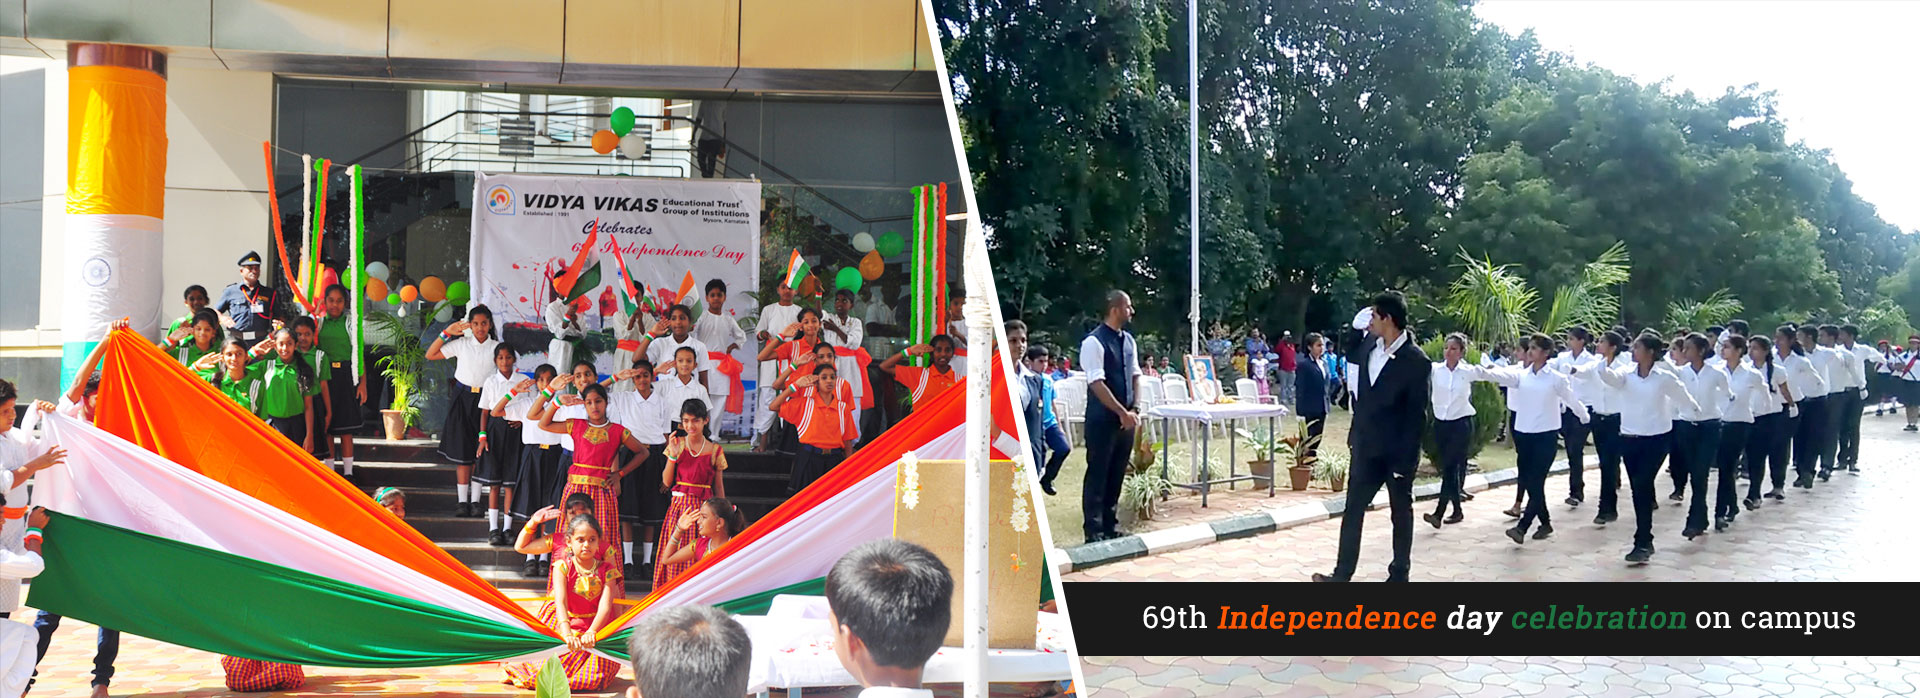 69th Independence day celebrations on campus